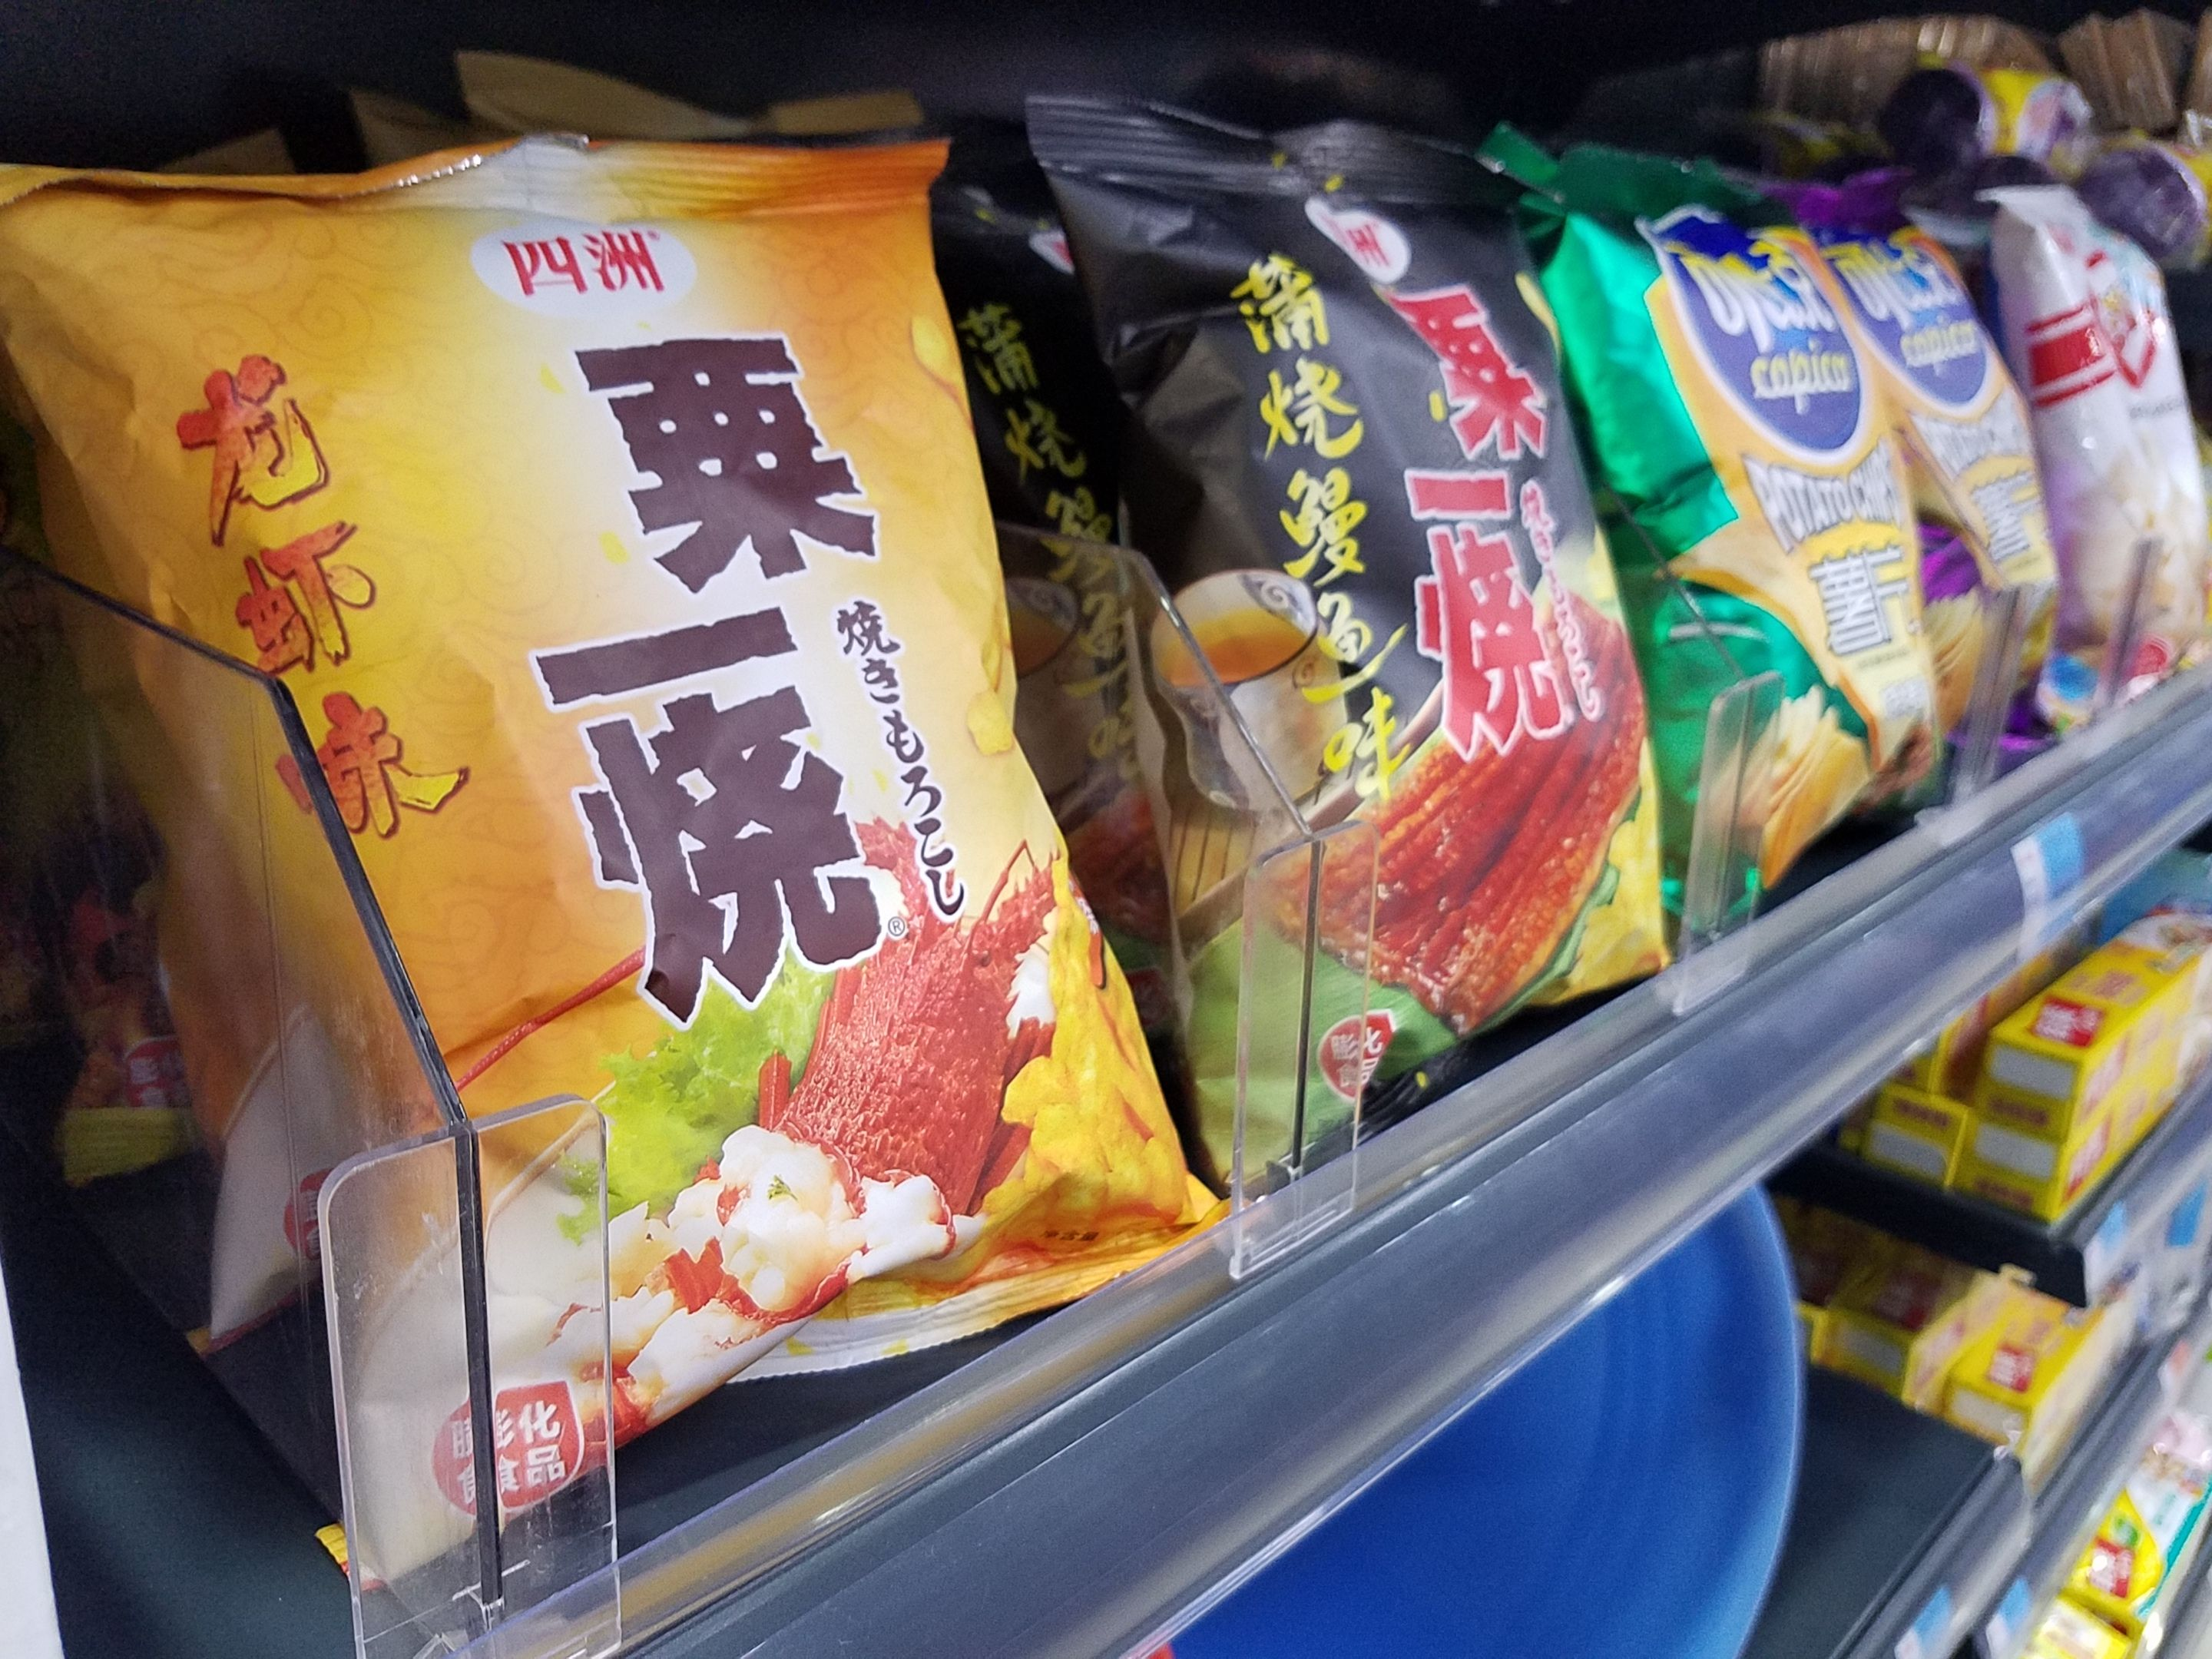 Pin by Ella Liang on shelf pusher system Snacks, Snack